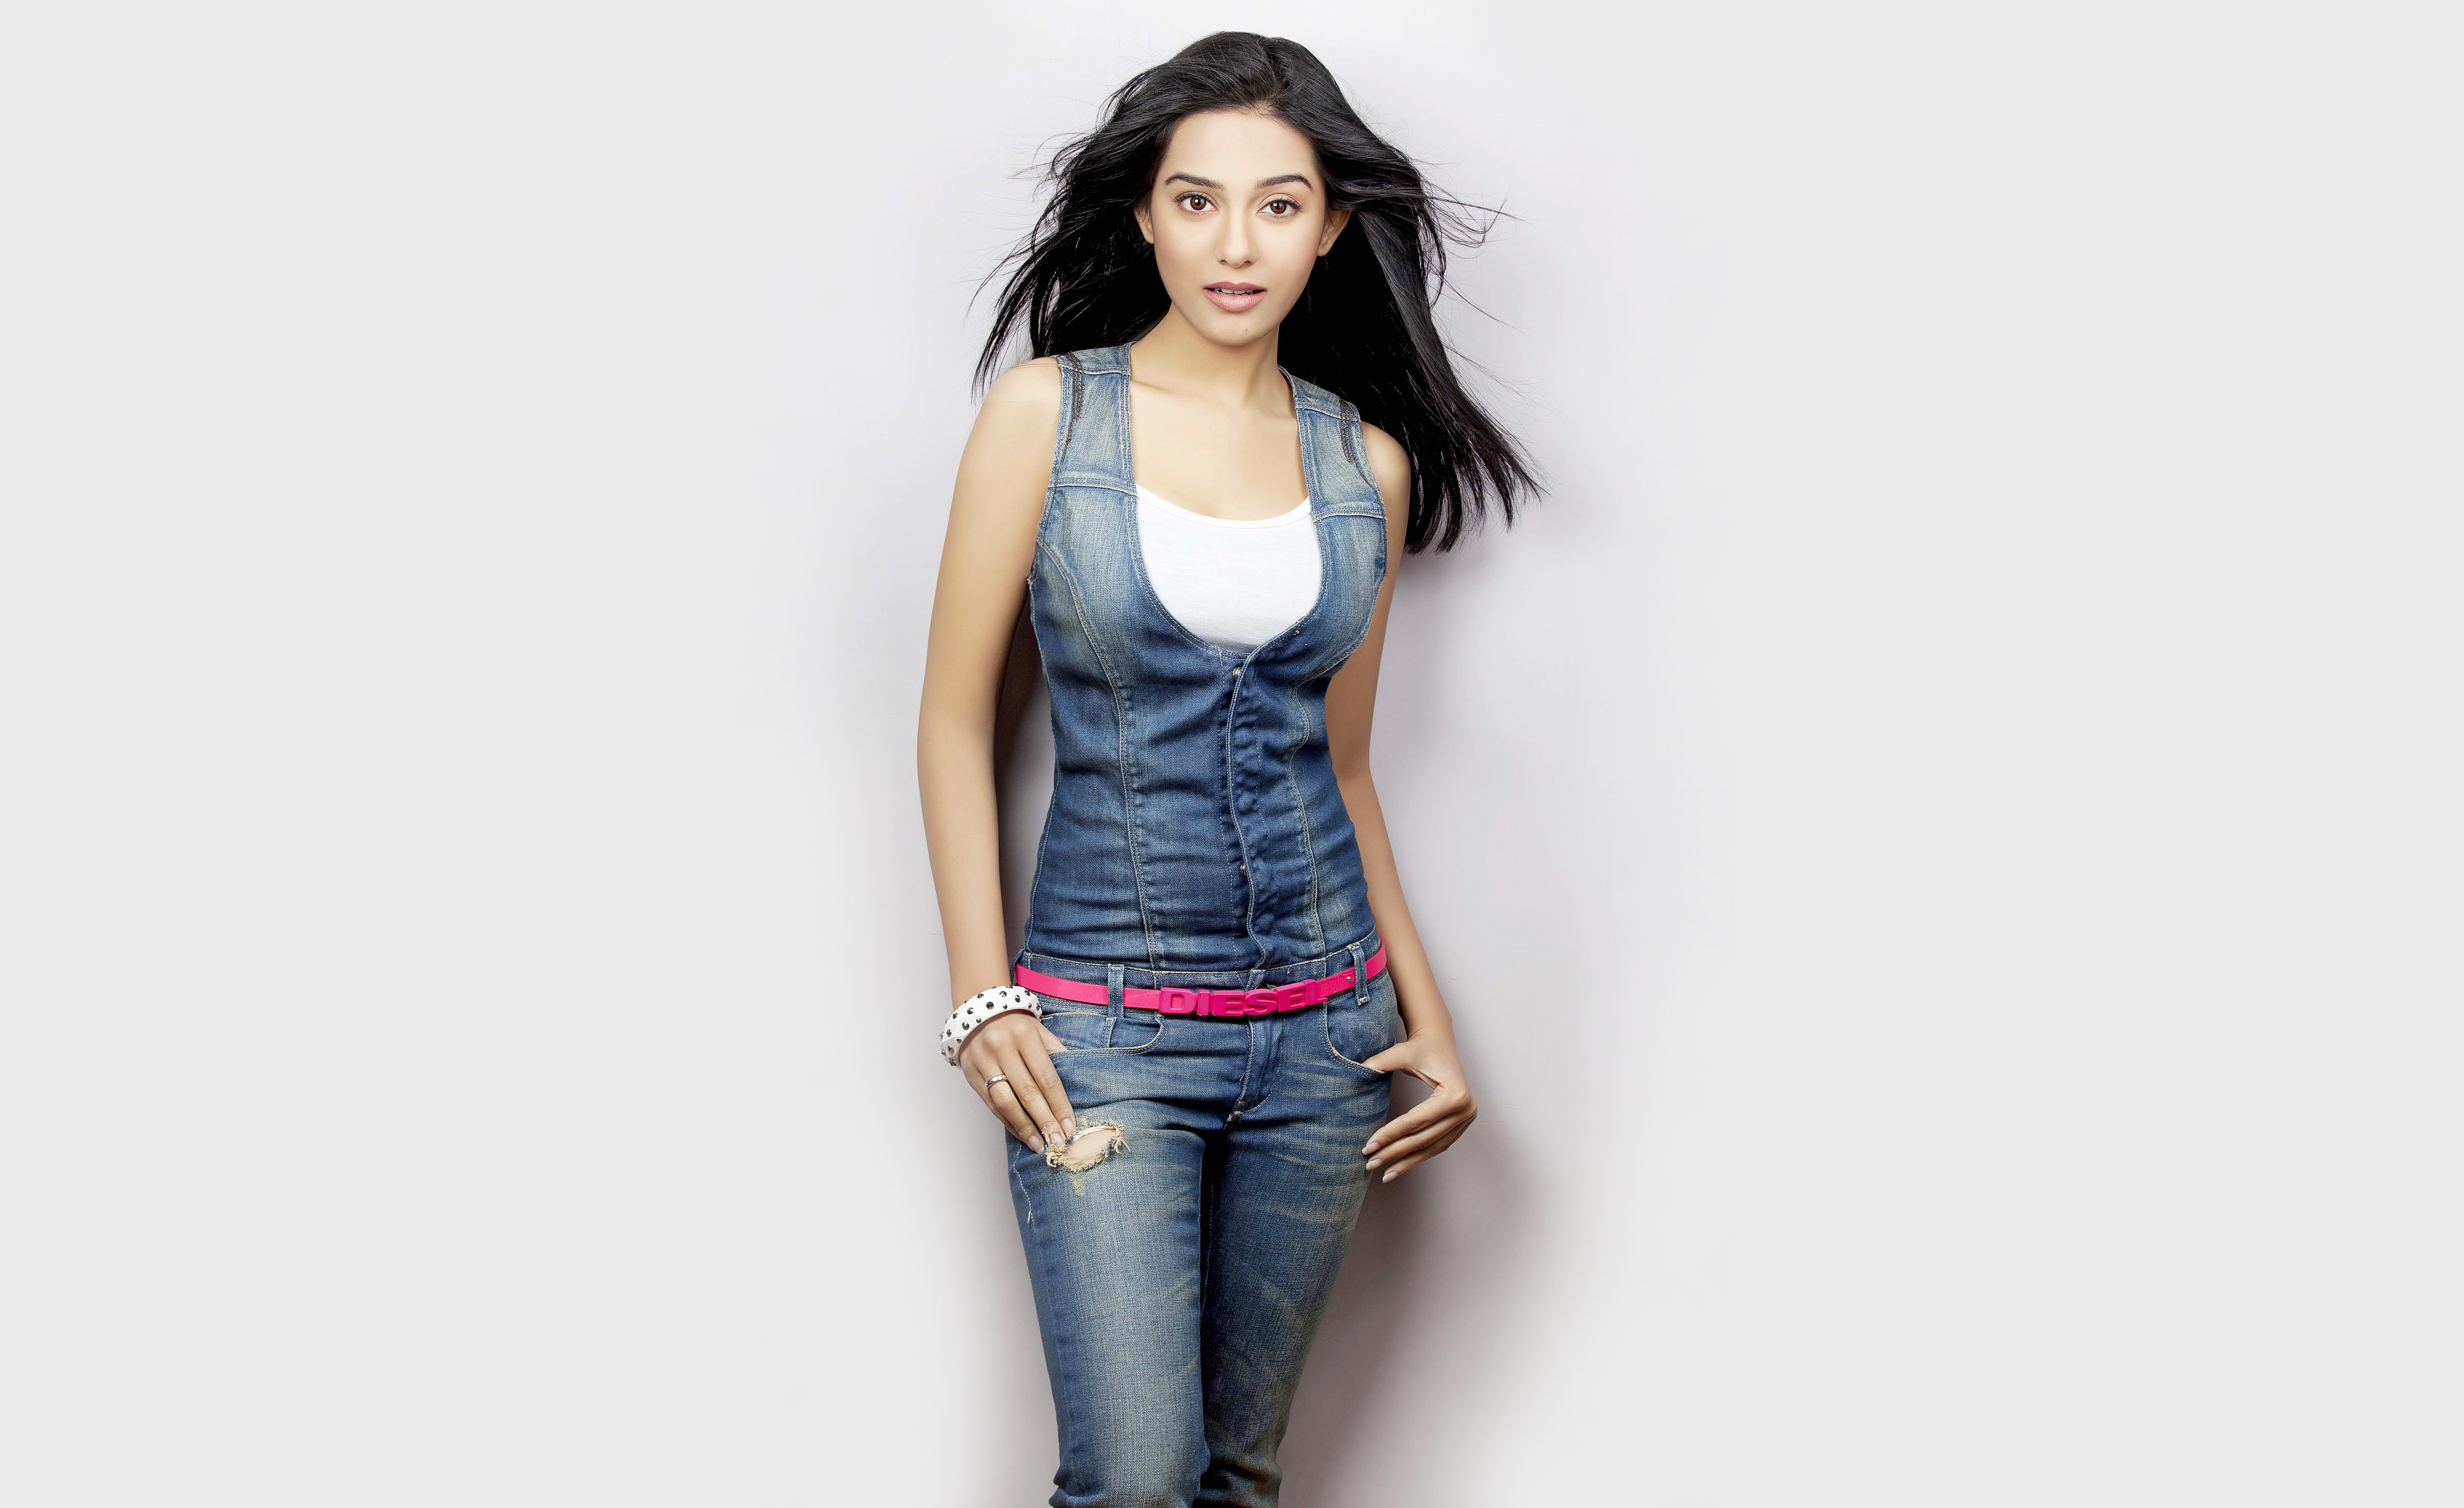 10 amrita rao hd wallpapers | background images - wallpaper abyss